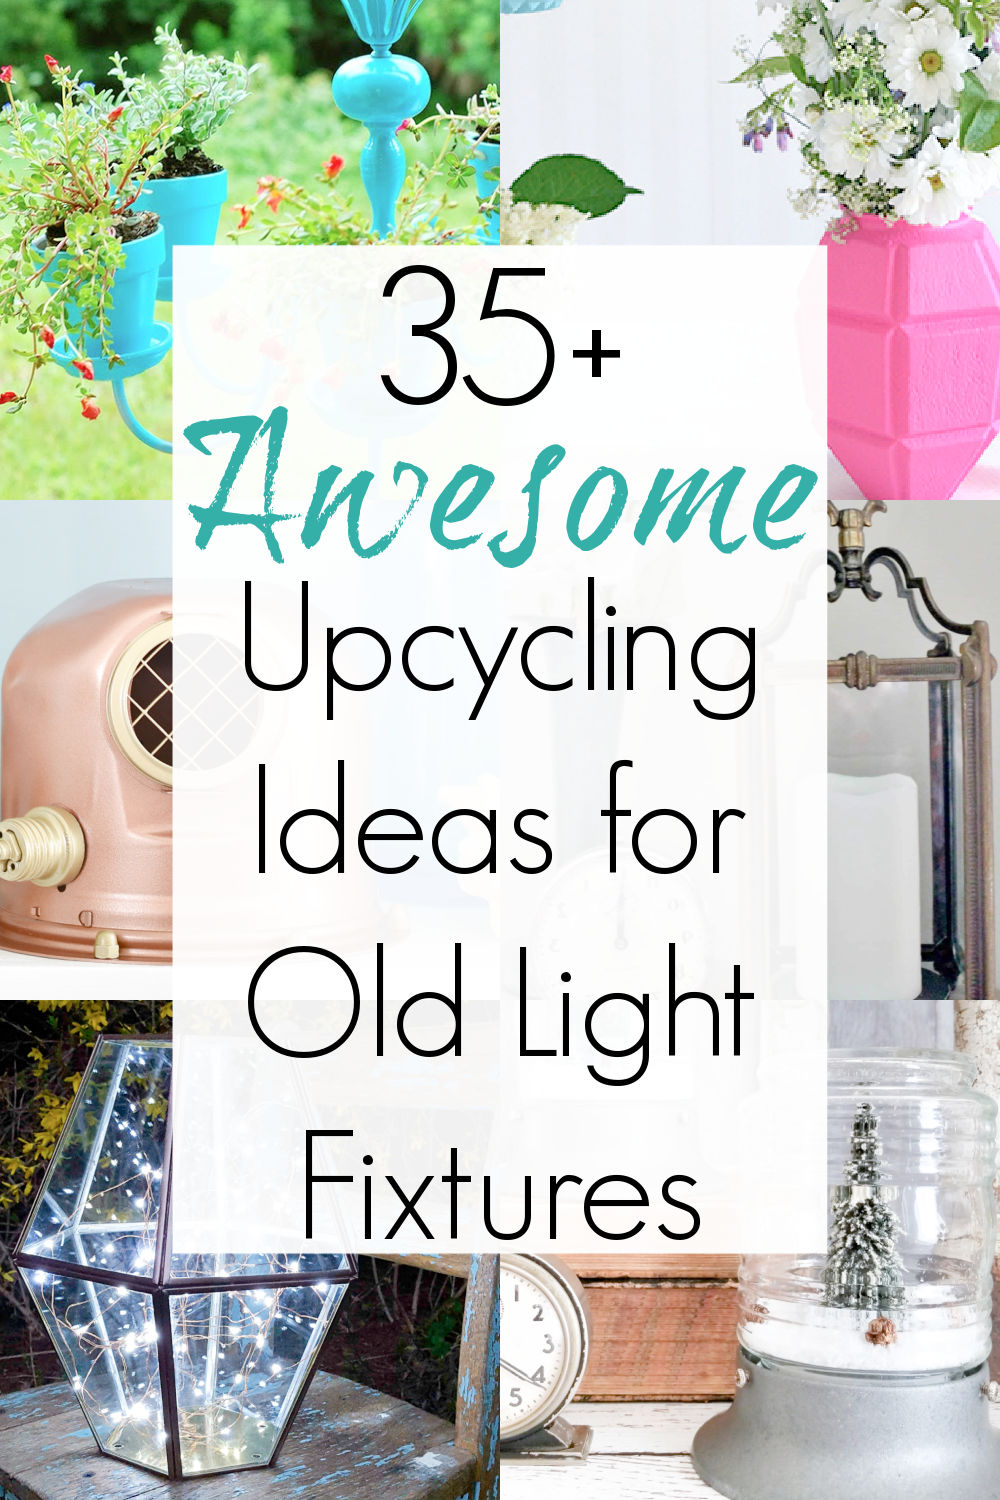 repurposed light fixtures and vintage light globes